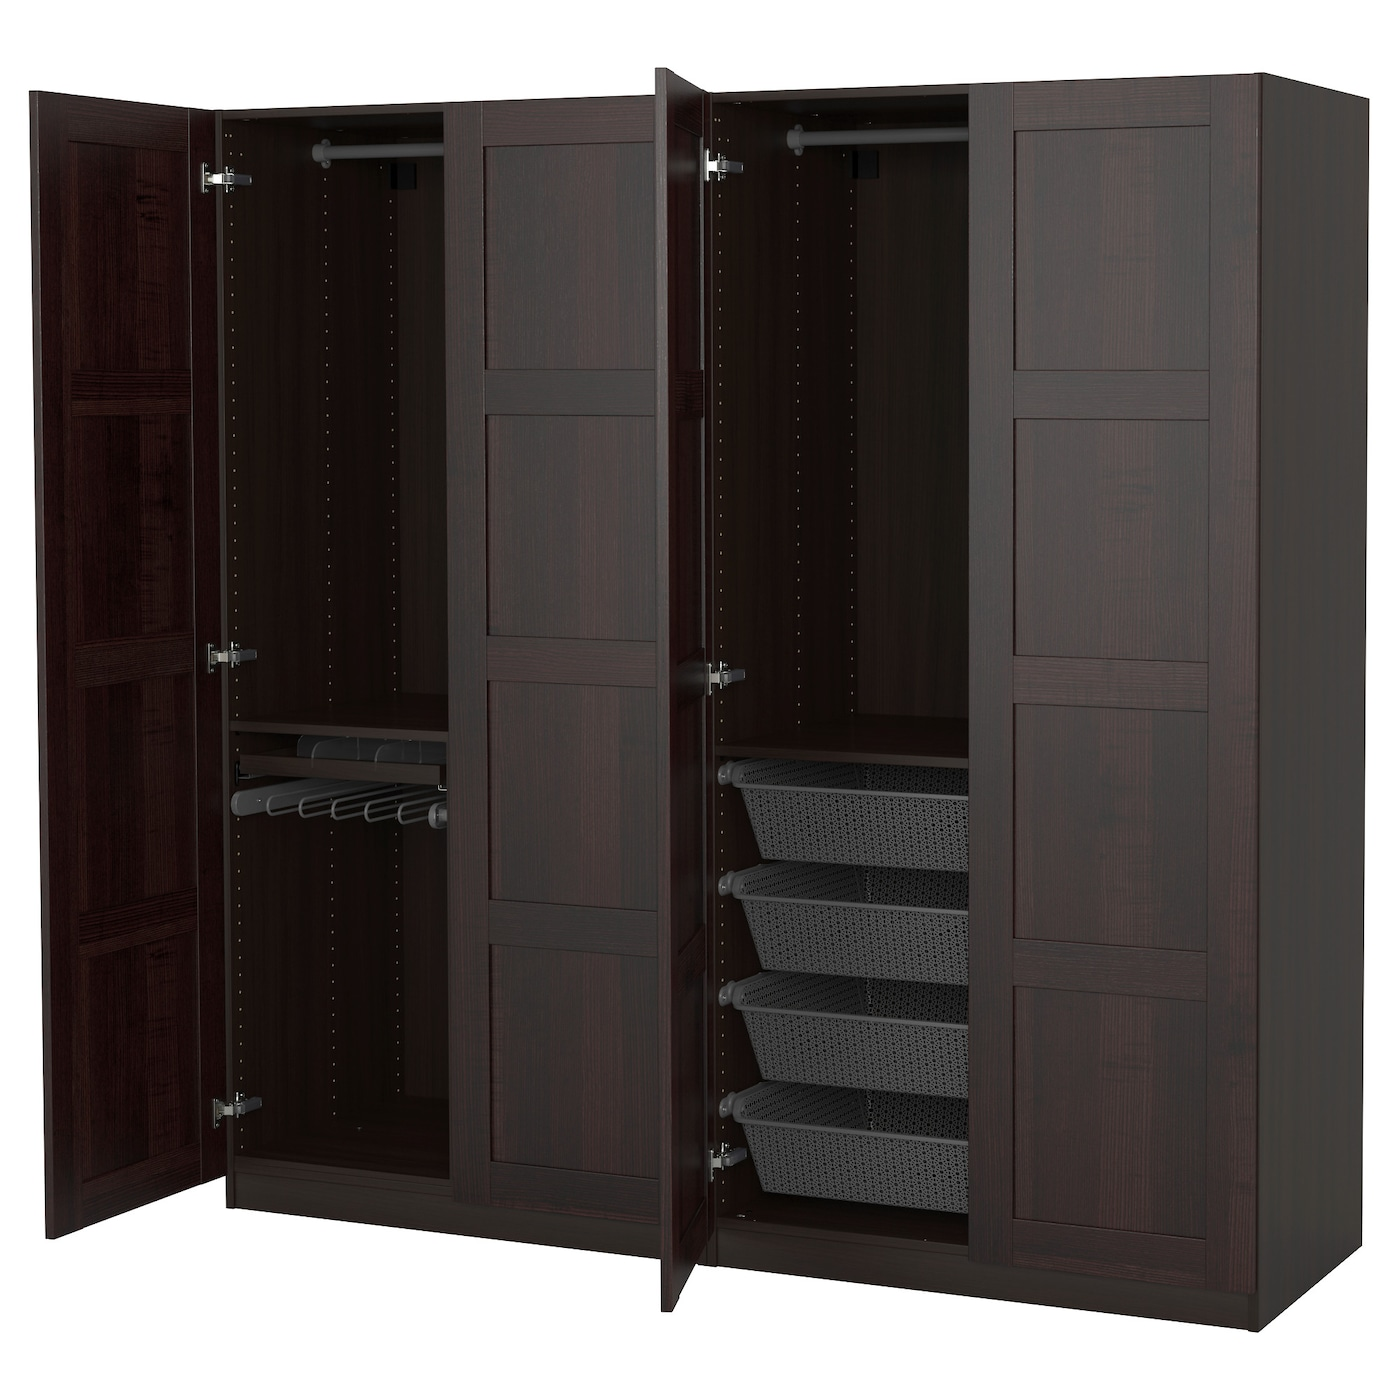 pax wardrobe black brown bergsbo black brown 200x60x201 cm. Black Bedroom Furniture Sets. Home Design Ideas